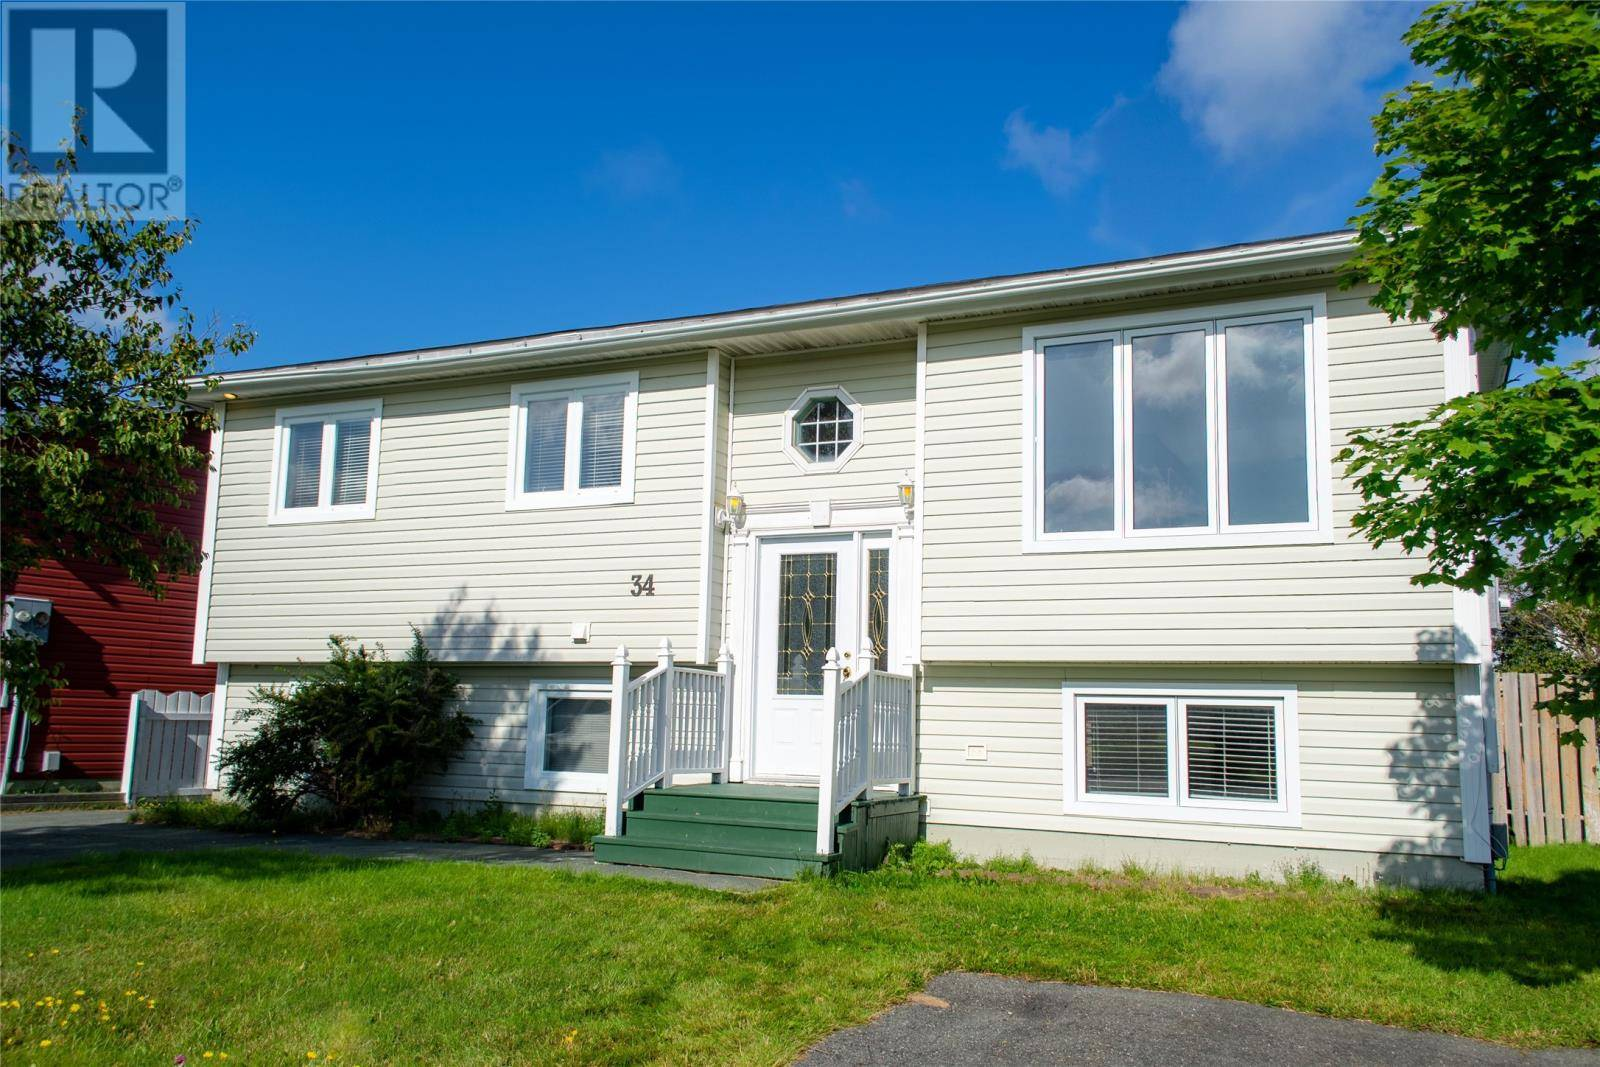 House for sale at 34 Moores Dr Mount Pearl Newfoundland - MLS: 1205251